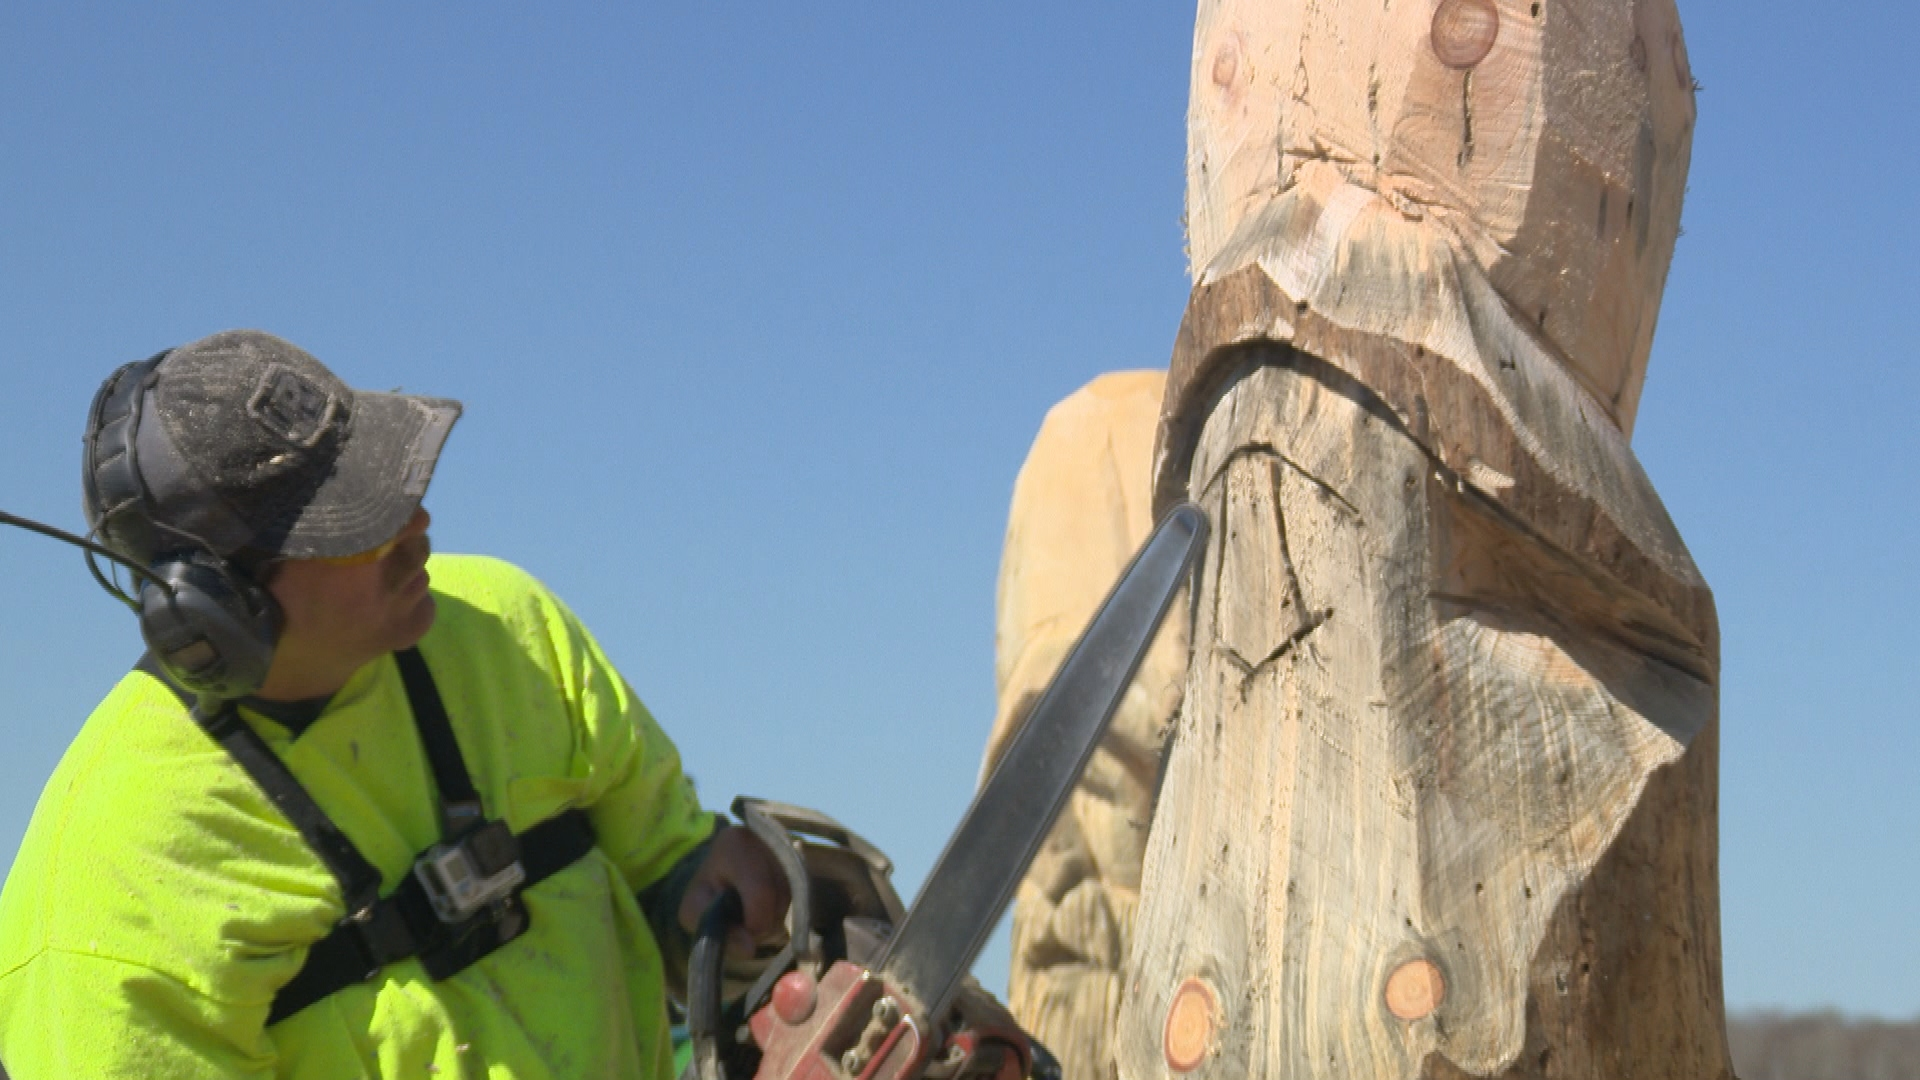 Chainsaw carver creates a buzz for his unusual creations